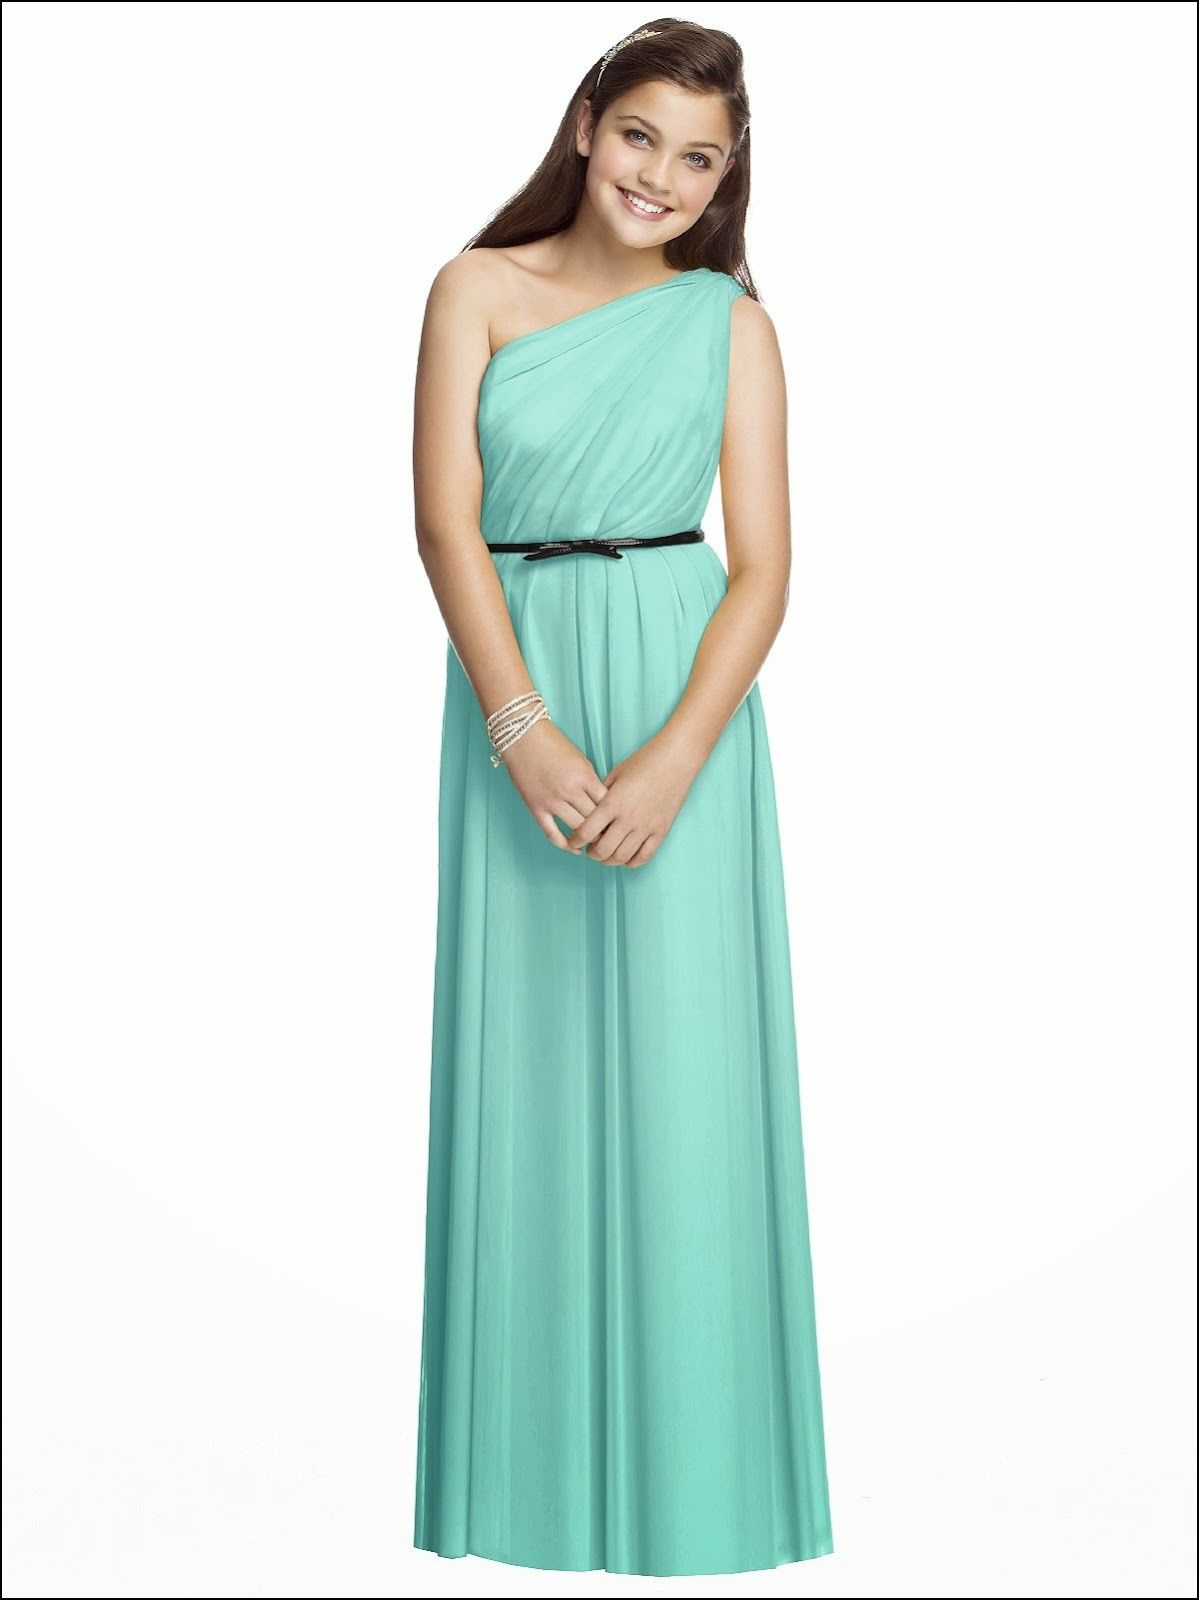 Macys bridesmaids dresses dresses and gowns ideas pinterest macys bridesmaids dresses ombrellifo Images